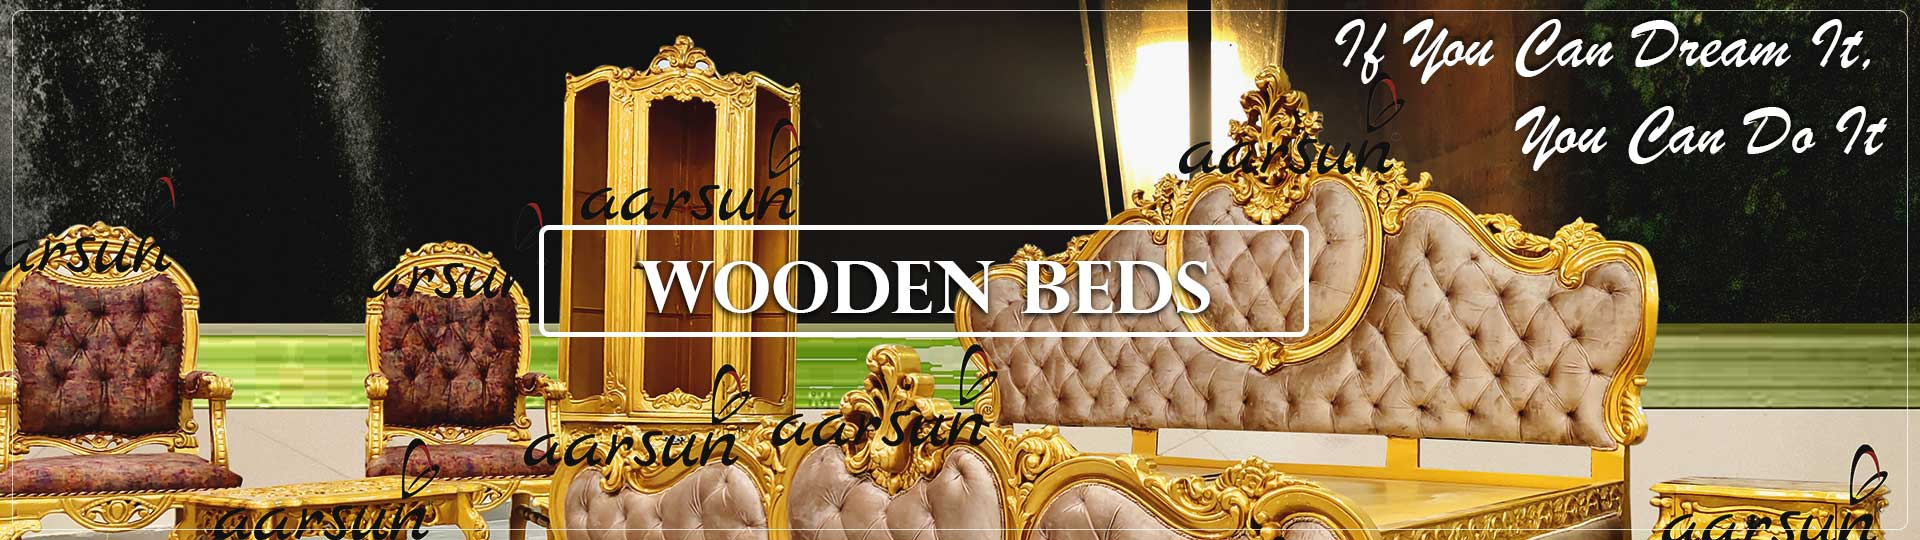 Wooden Beds by Aarsun